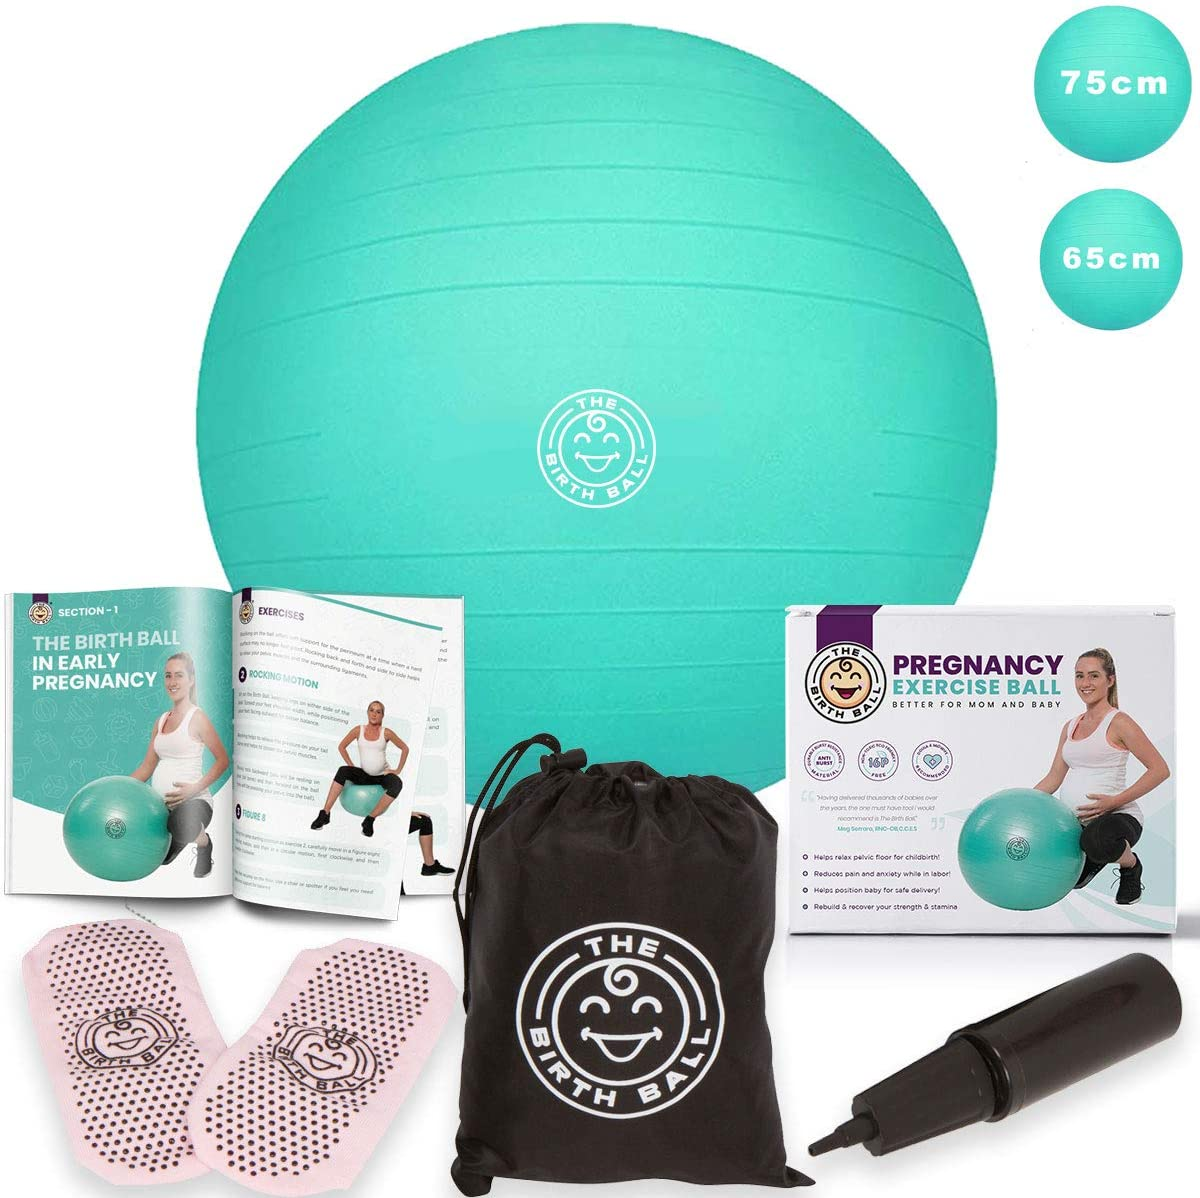 Amazon.com: The Birth Ball - Birthing Ball for Pregnancy & Labor - 18 Page Pregnancy  Ball Exercises Guide by Trimester - Non Slip Socks - How to Dilate, Induce,  Reposition Baby for